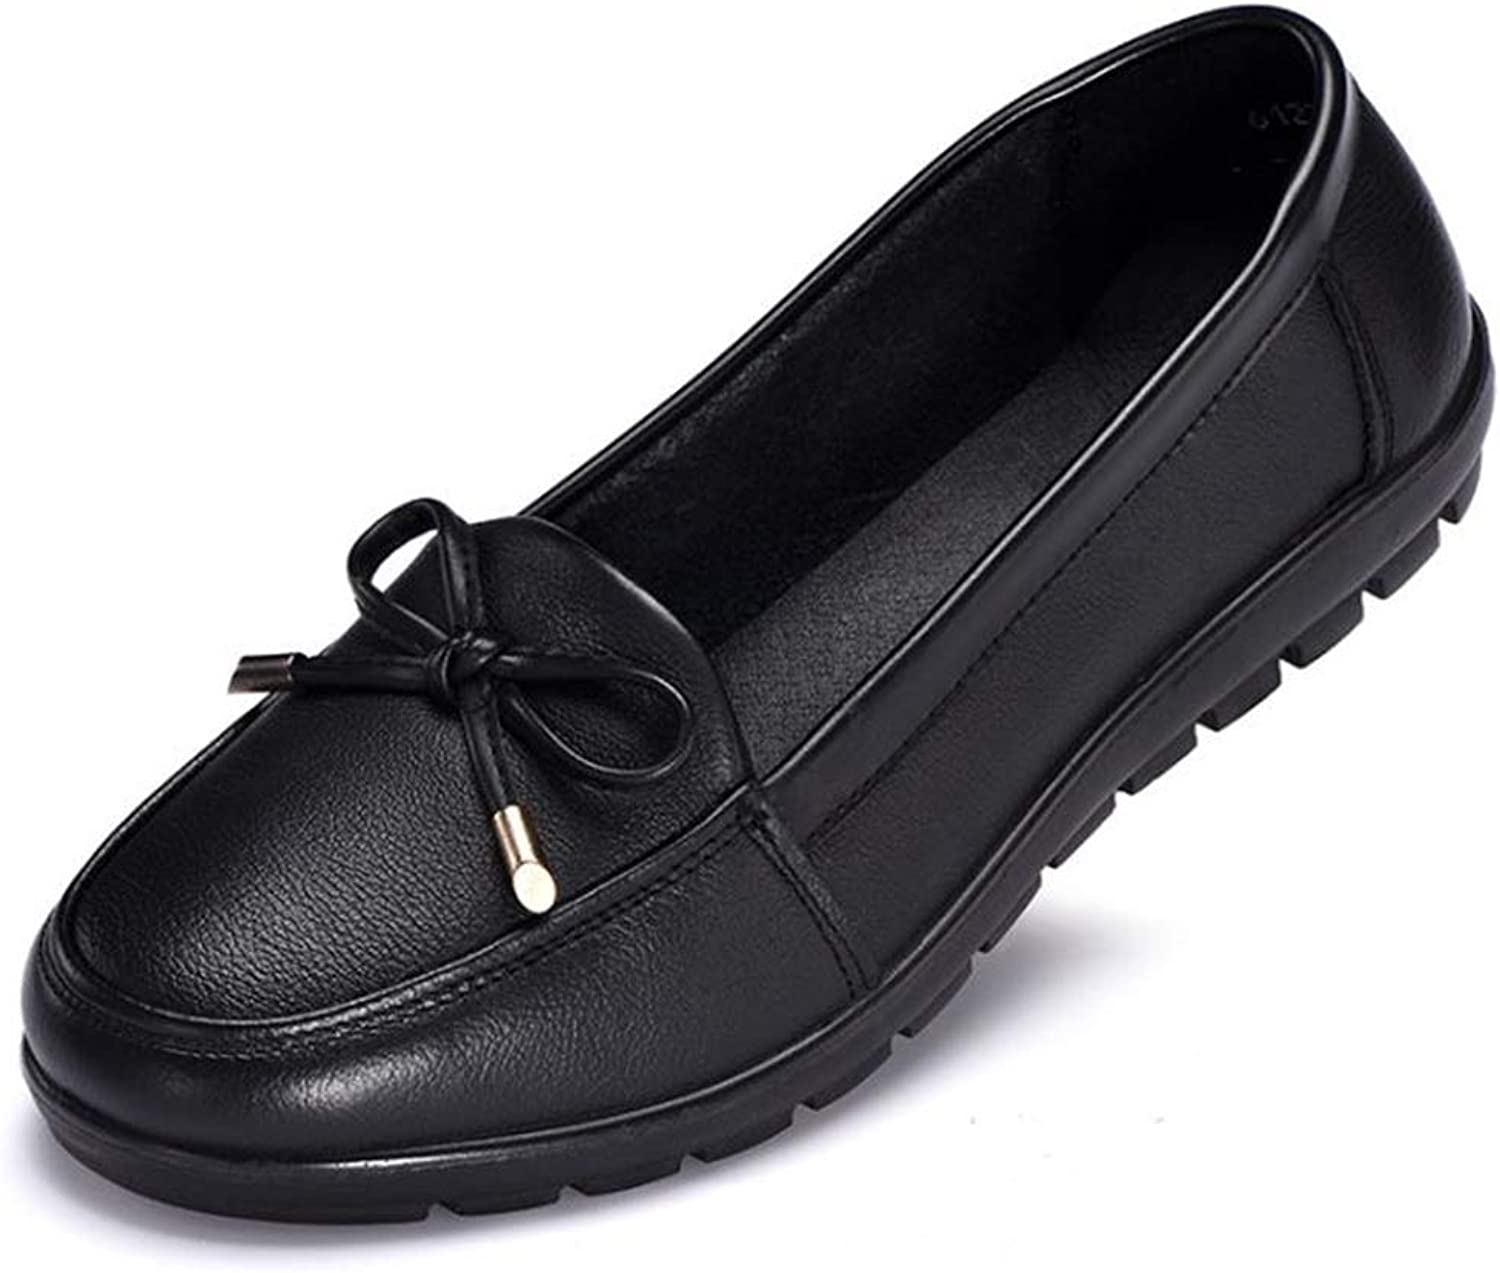 Fancyww Womens Dress shoes Genuine Leather Slip On Loafers Casual Flat Moccasins